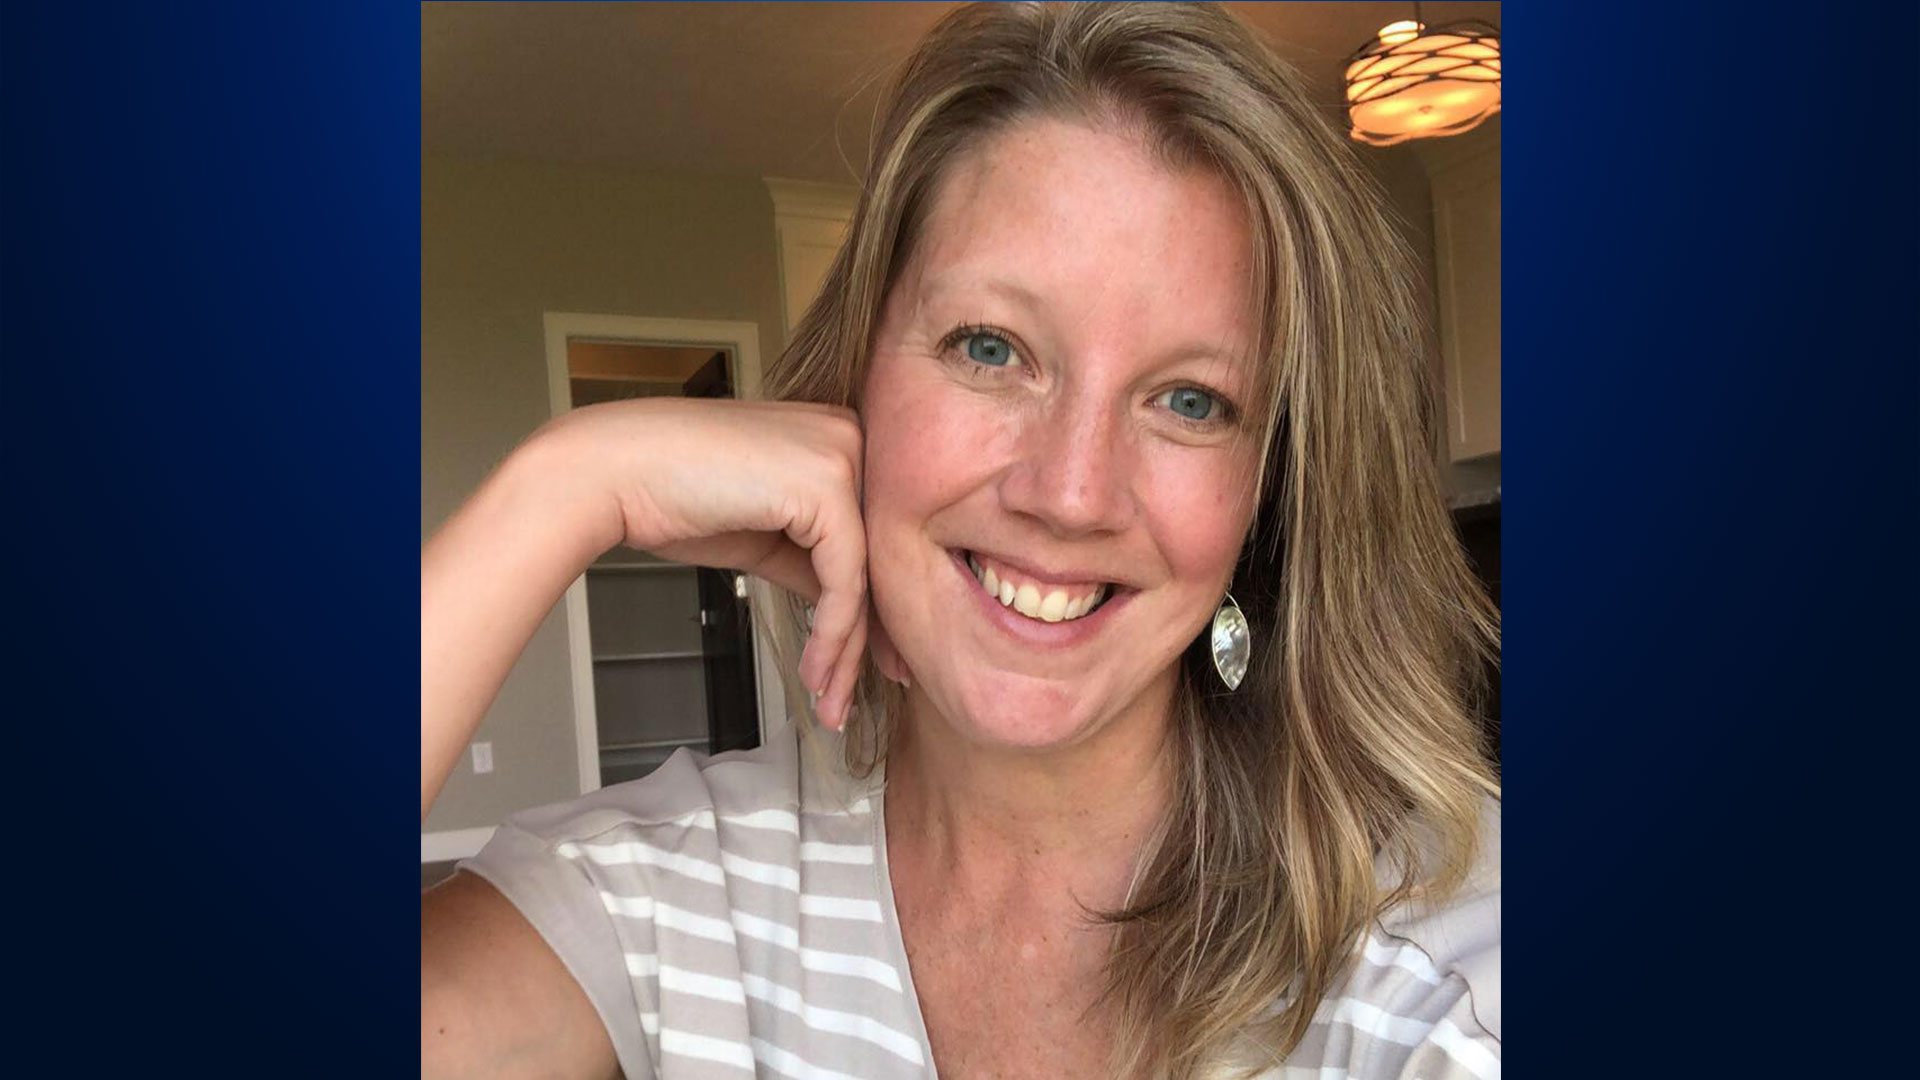 Authorities In Missouri Following More Than 60 Leads In Melissa Peskey Homicide Investigation